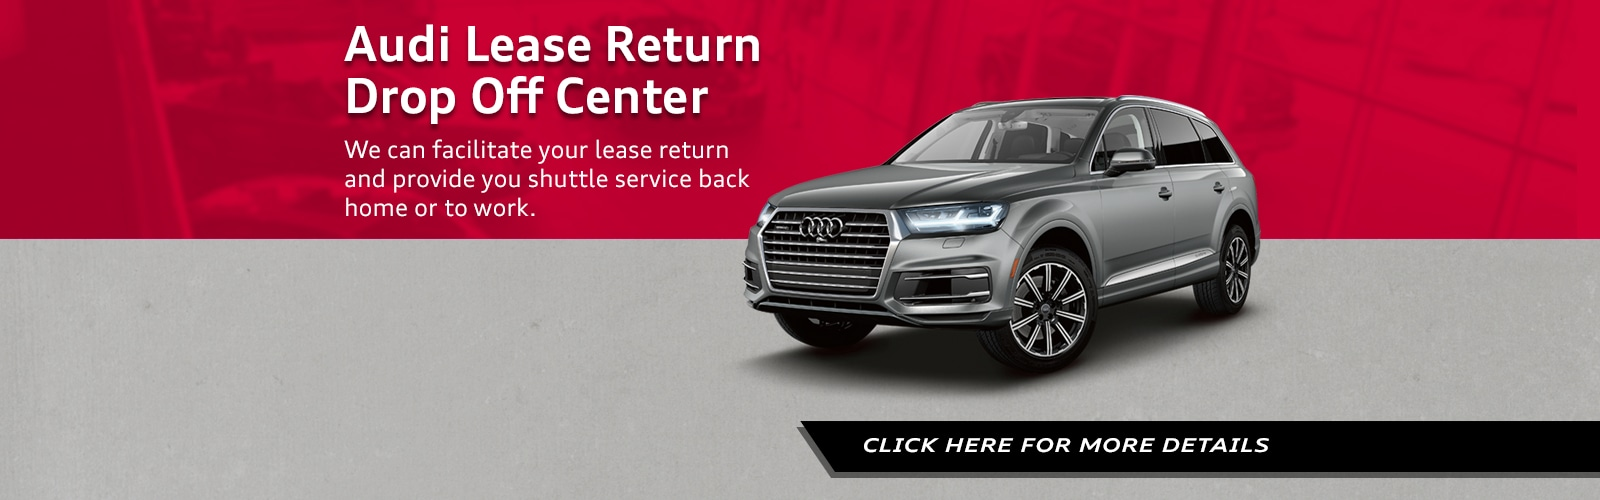 New And Used Audi Dealer Los Angeles Audi Downtown LA - Socal audi dealers